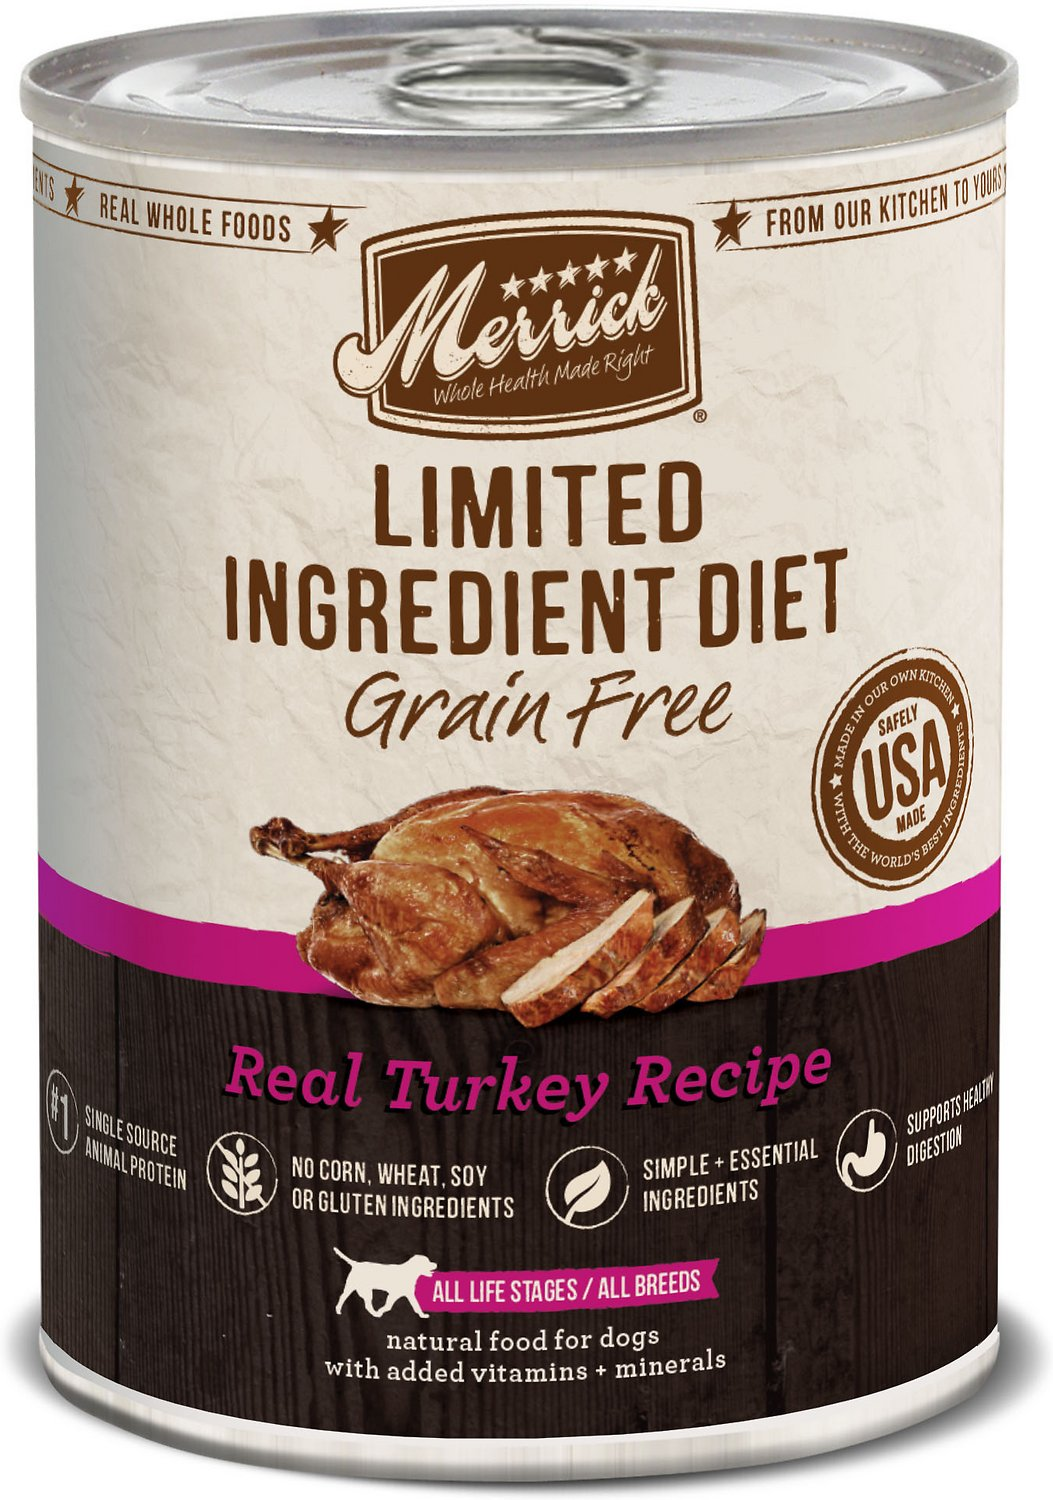 Merrick Limited Ingredient Diet Grain-Free Real Turkey Recipe Canned Dog Food Image